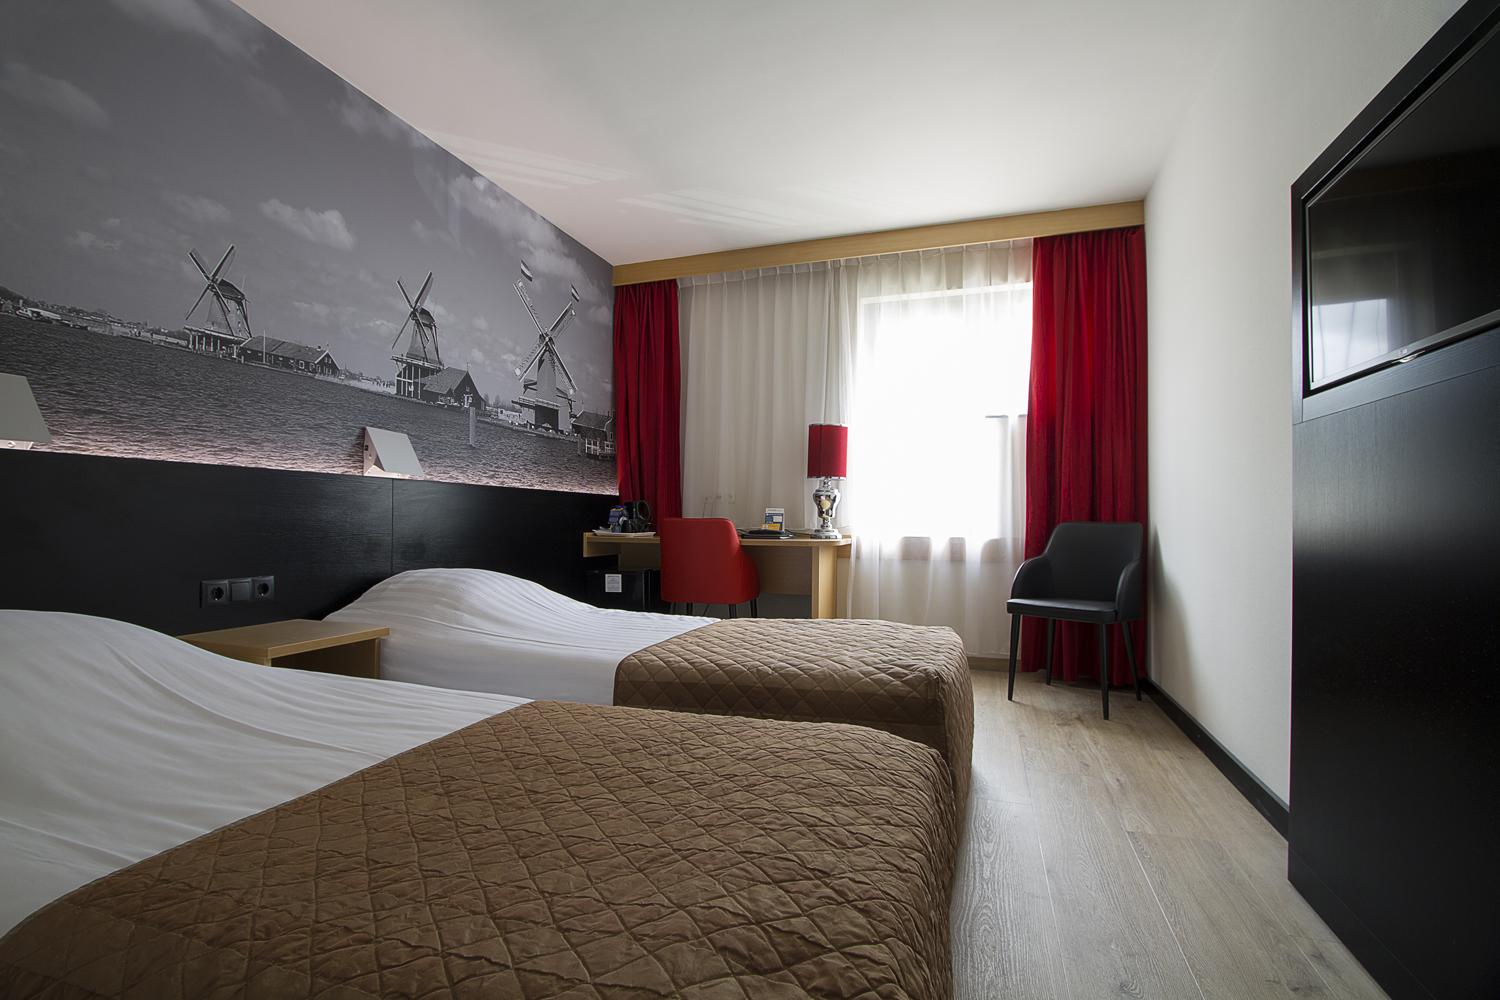 Bastion Hotel Zaandam - Hotelroom